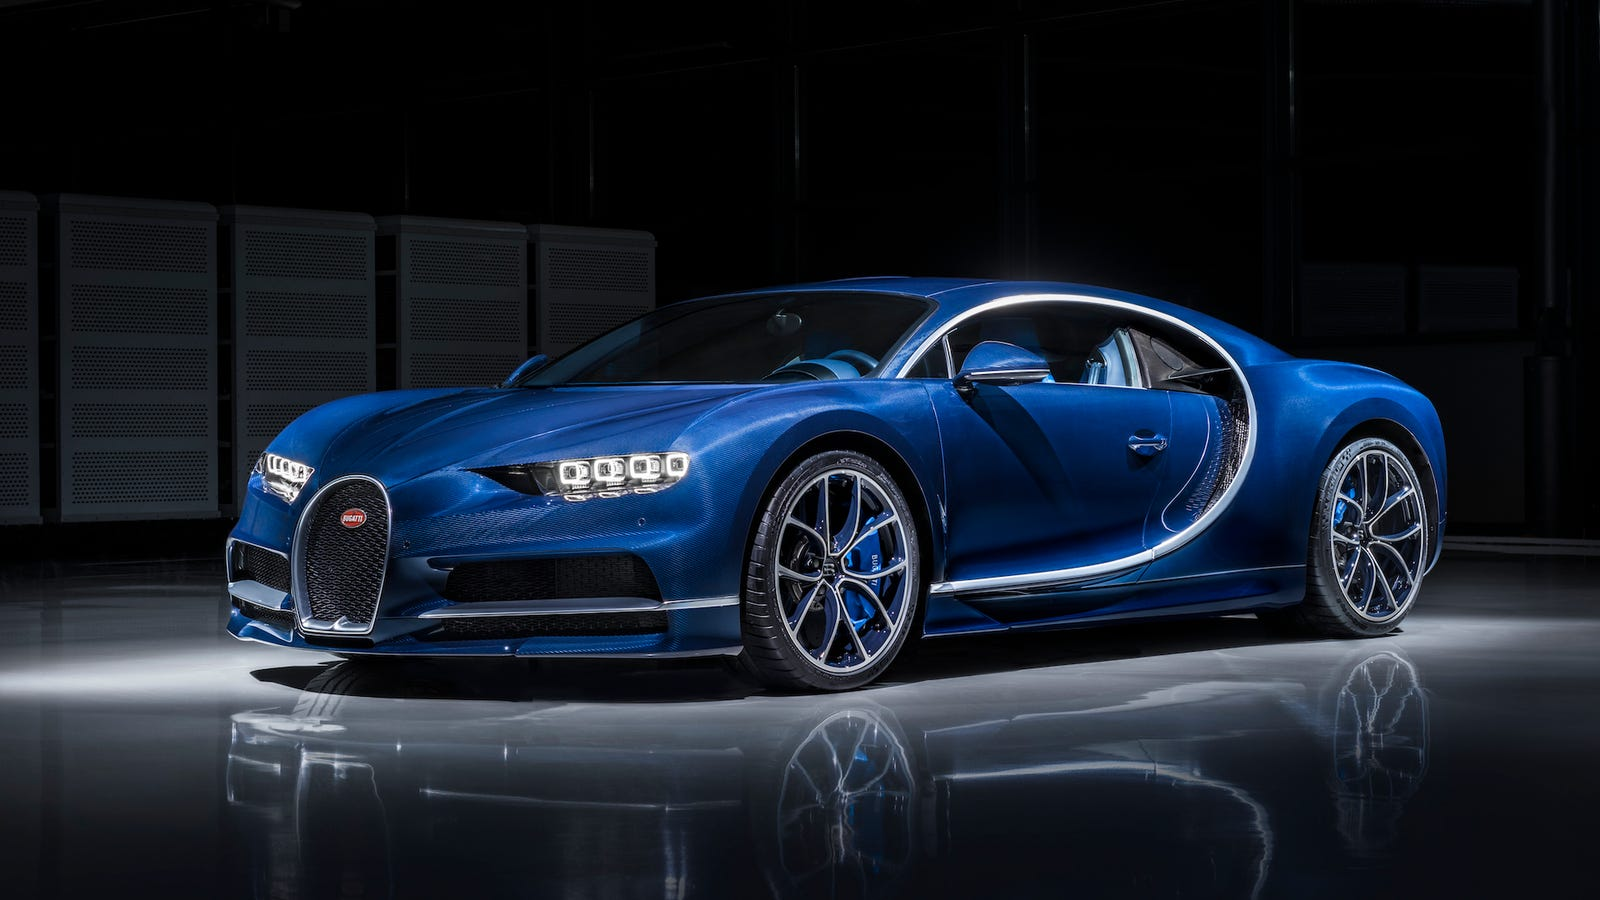 bugatti veyron production with Why The Bugatti Chiron Probably Wont Hit 300 Mph 1796418643 on Ferrari Enzo Front Wb 1280x960 further Peugeots New Fractal Coupe Hatch likewise Why The Bugatti Chiron Probably Wont Hit 300 Mph 1796418643 furthermore 2006 Koenigsegg Ccx Instrumented Test furthermore Bugatti Chiron Suv Rendered.